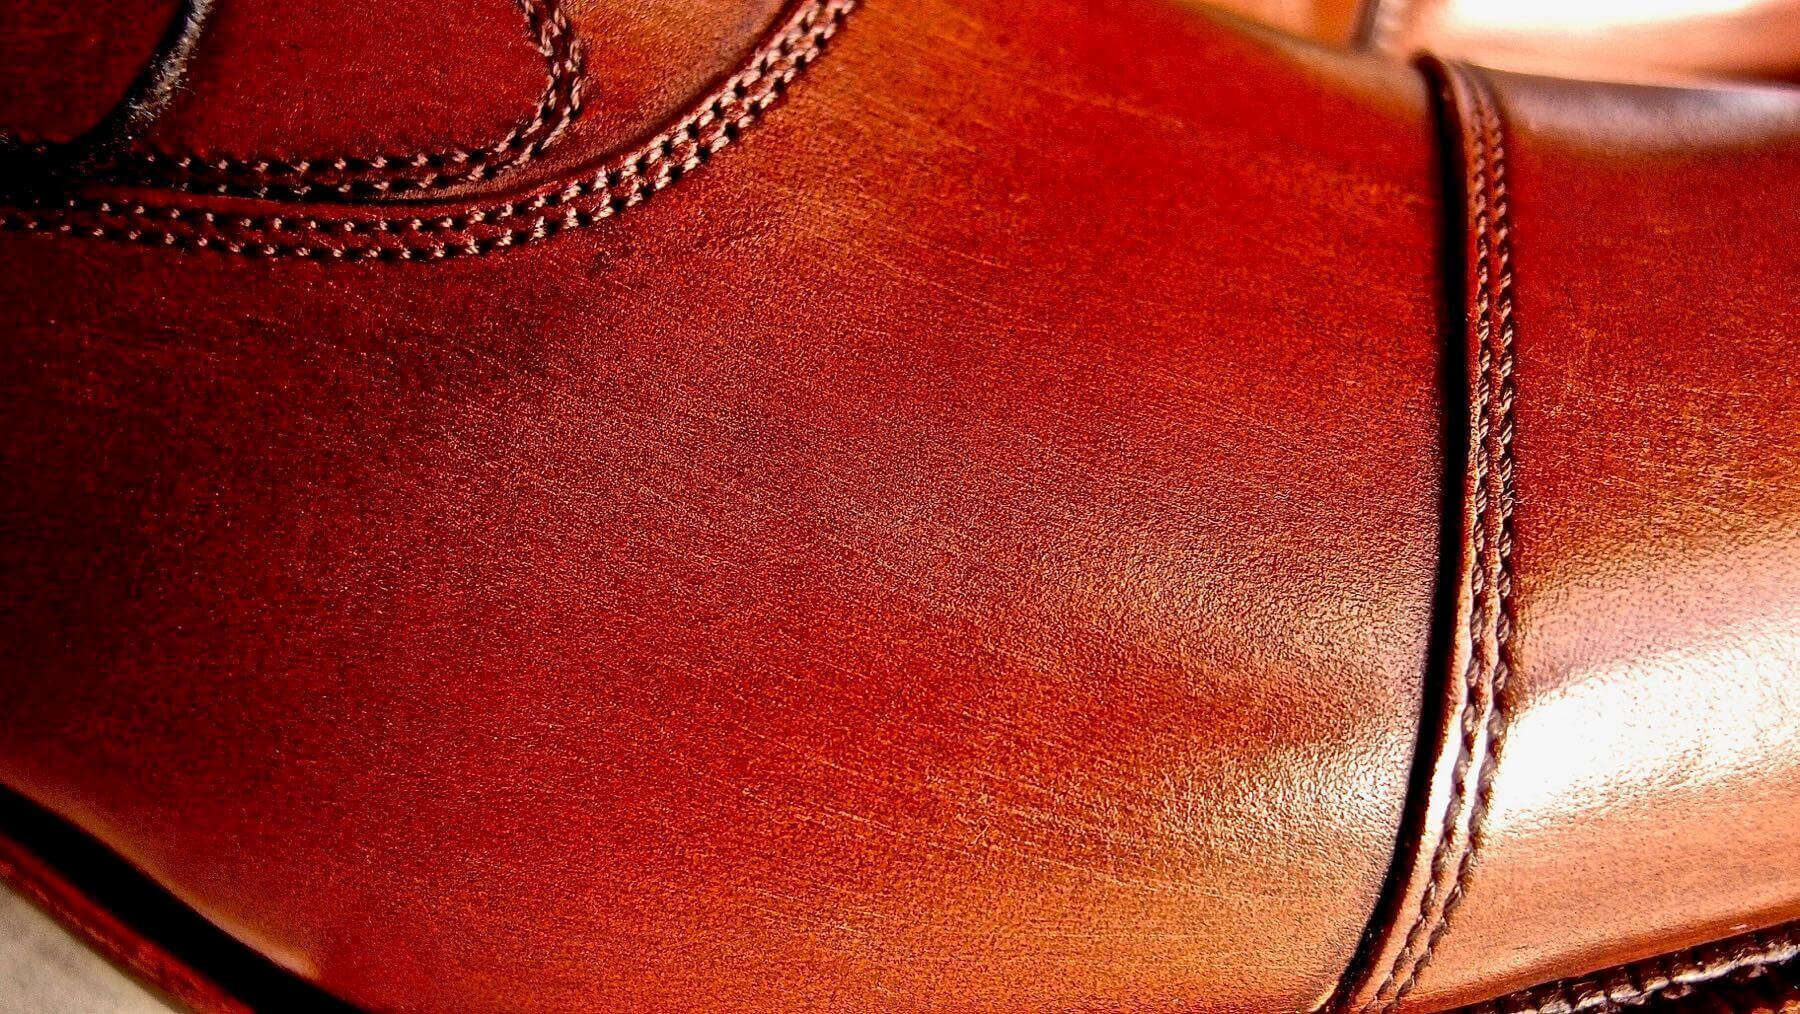 07 Shetlandfox Glasgow Leather shoescare